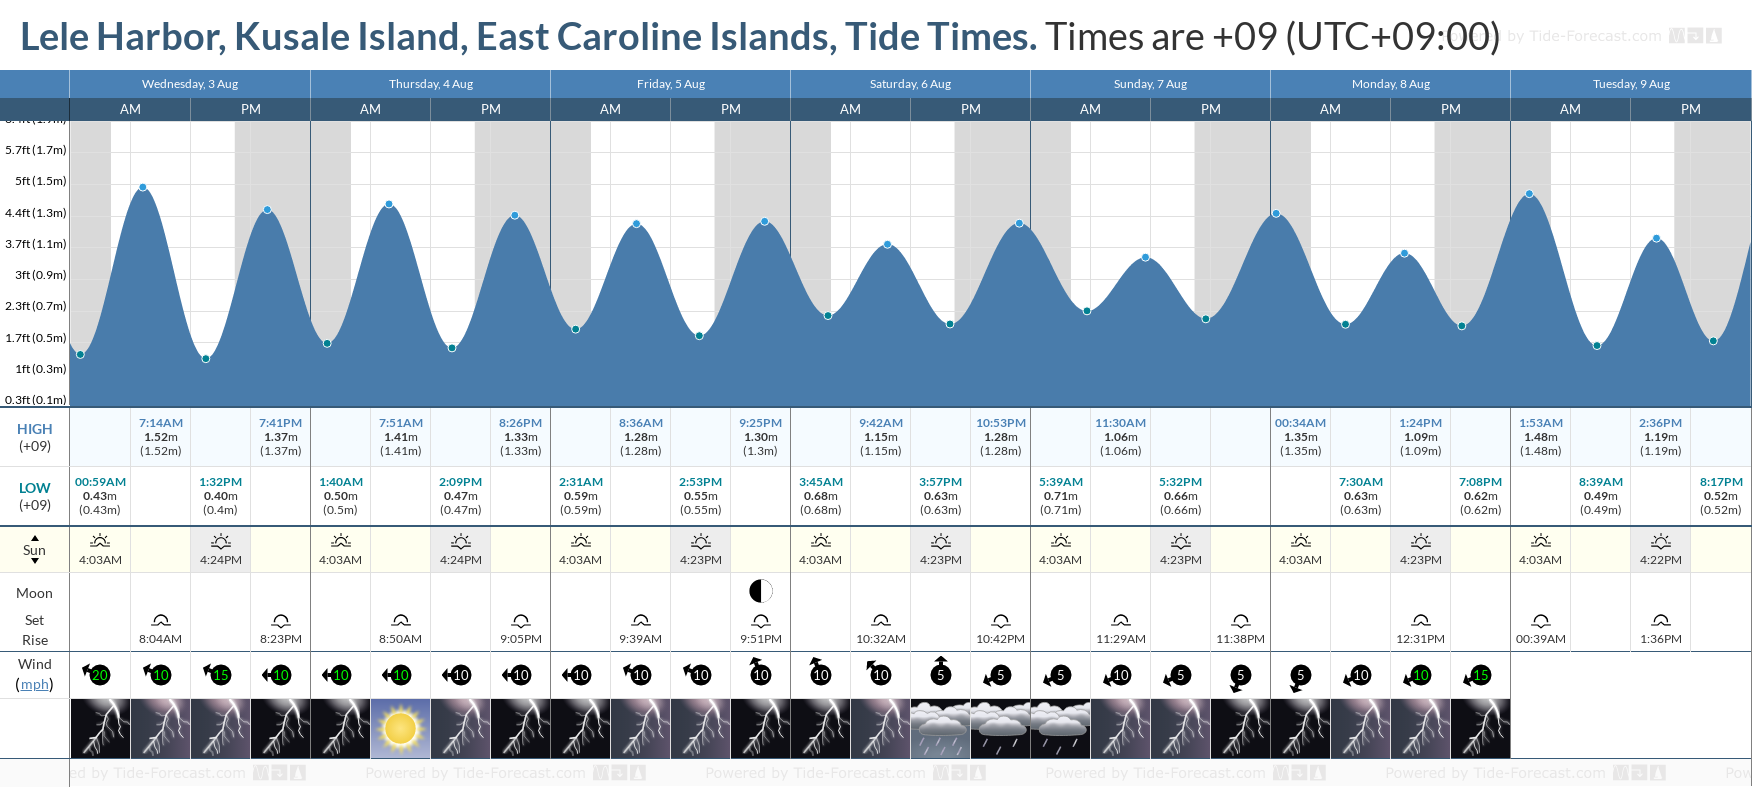 Lele Harbor, Kusale Island, East Caroline Islands Tide Chart including high and low tide tide times for the next 7 days